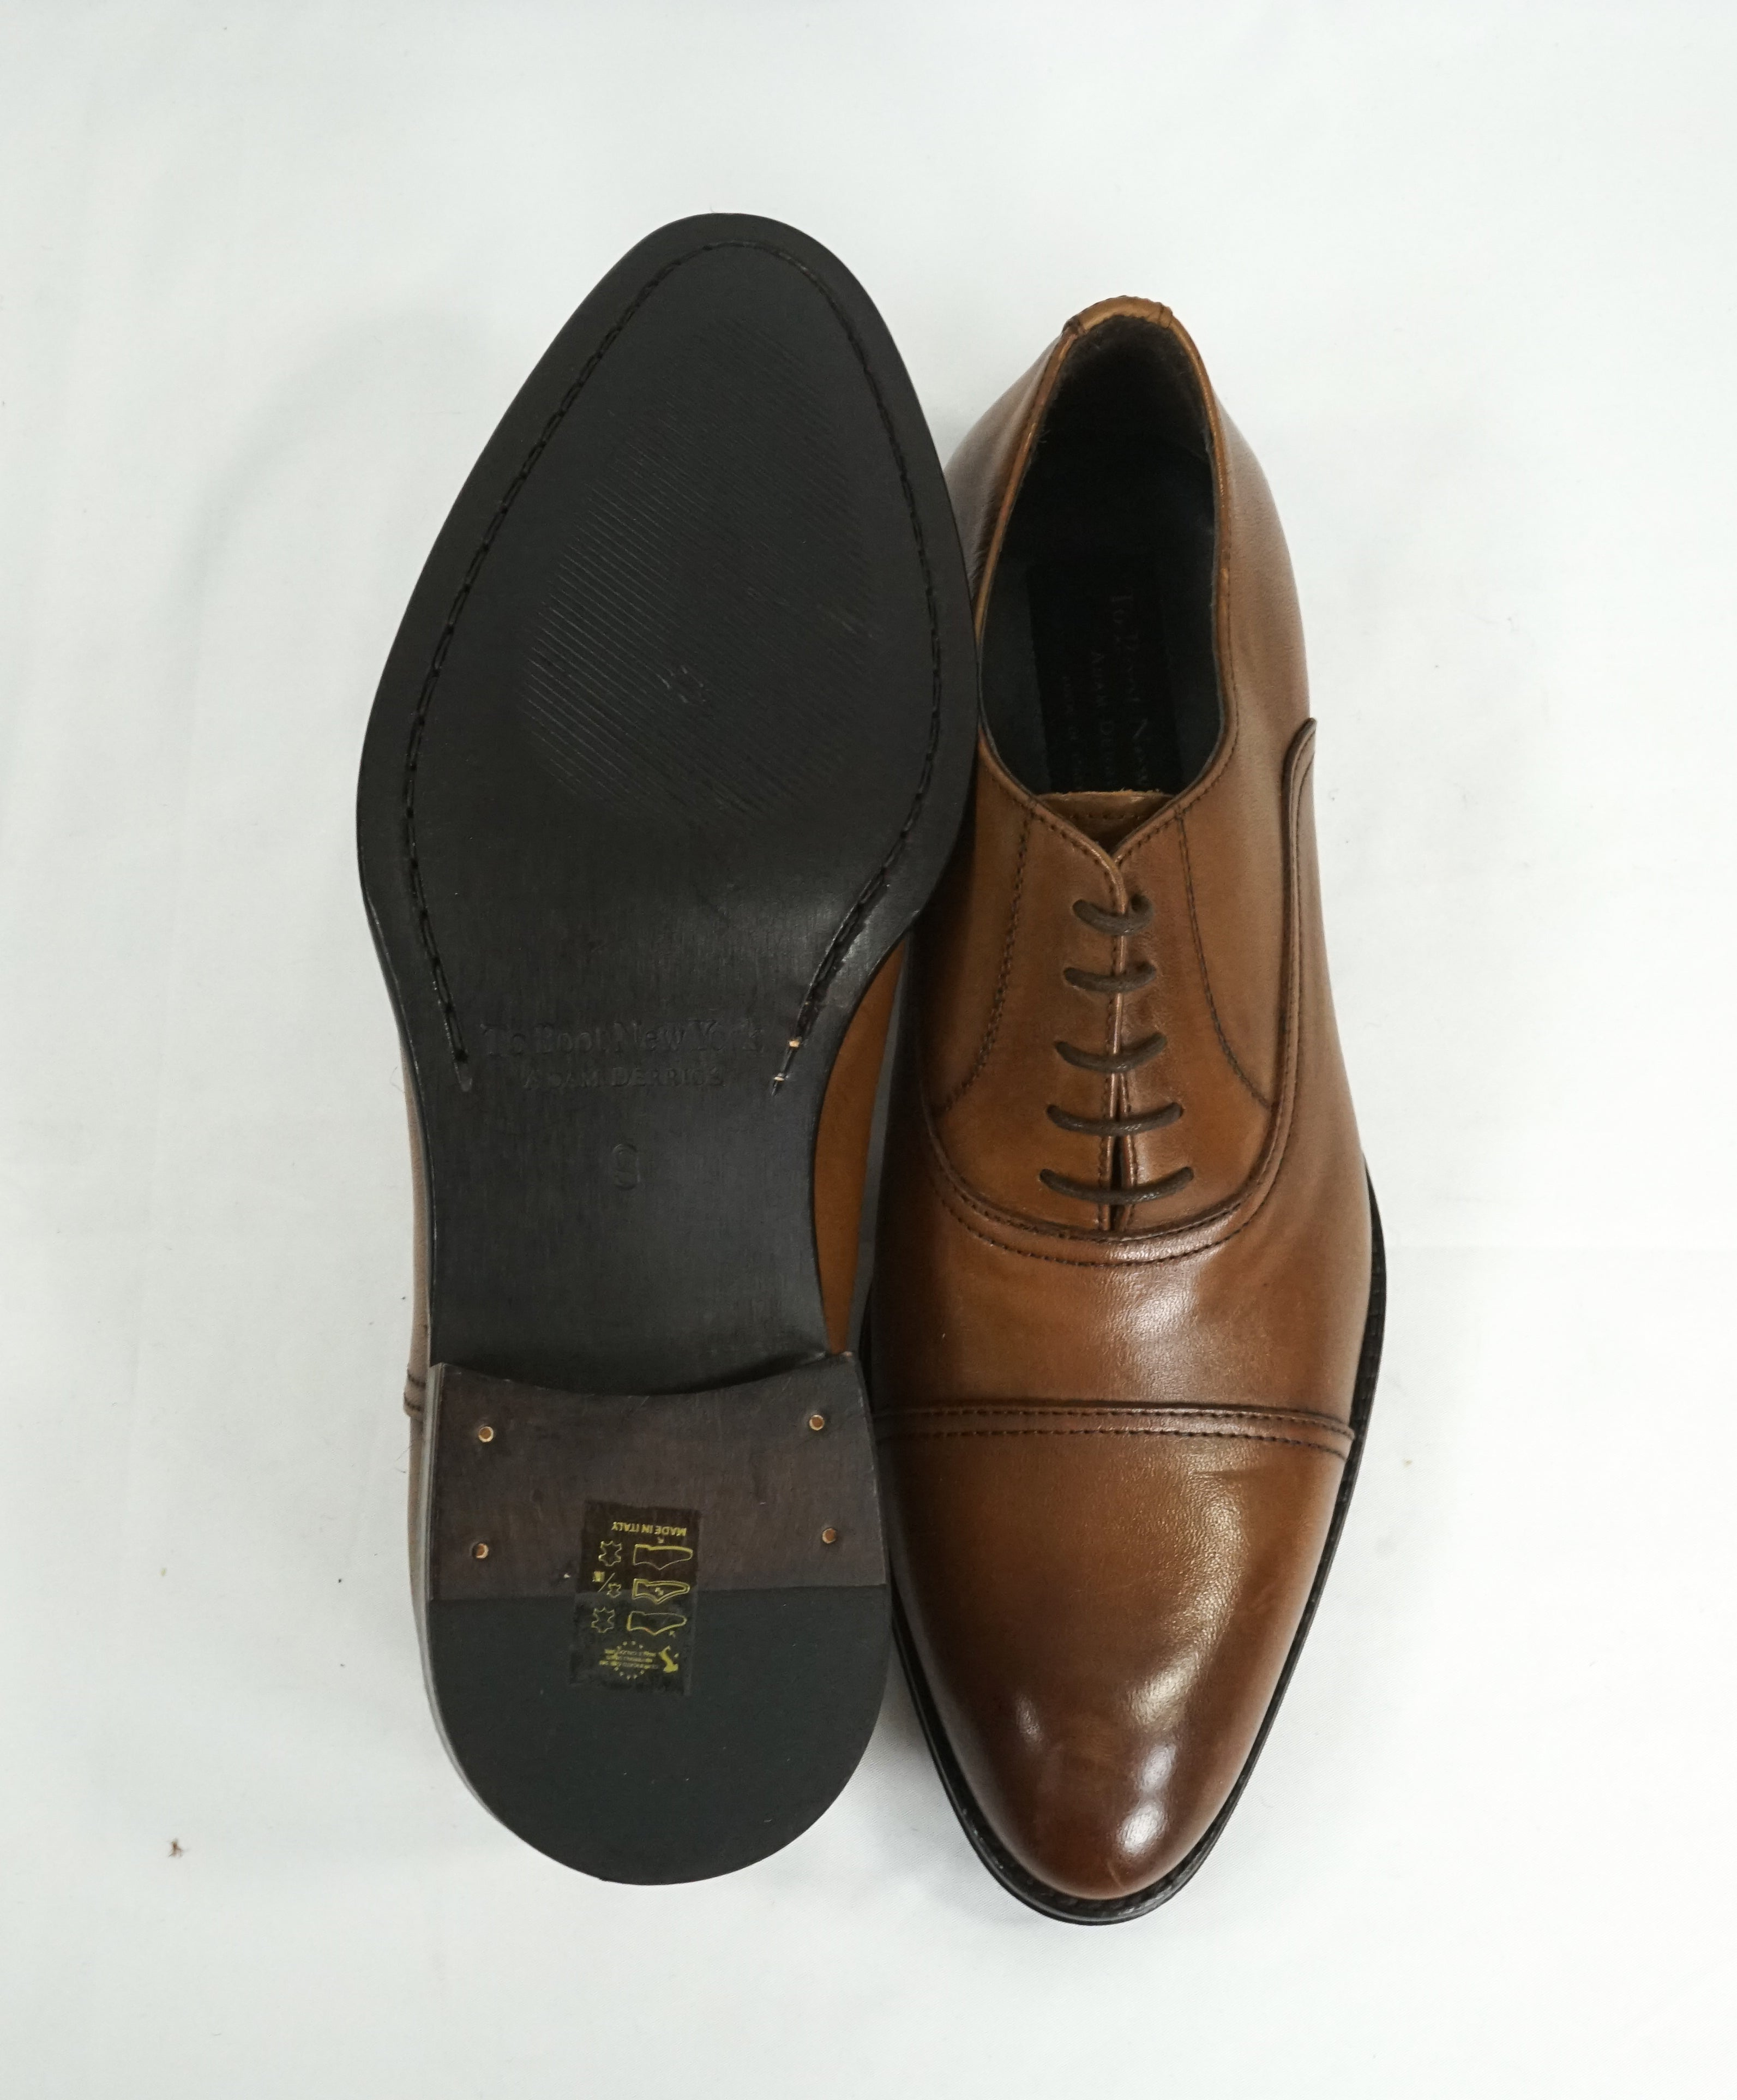 TO BOOT NEW YORK - Sleek Brown Oxfords In a Round Cap Toe - 9